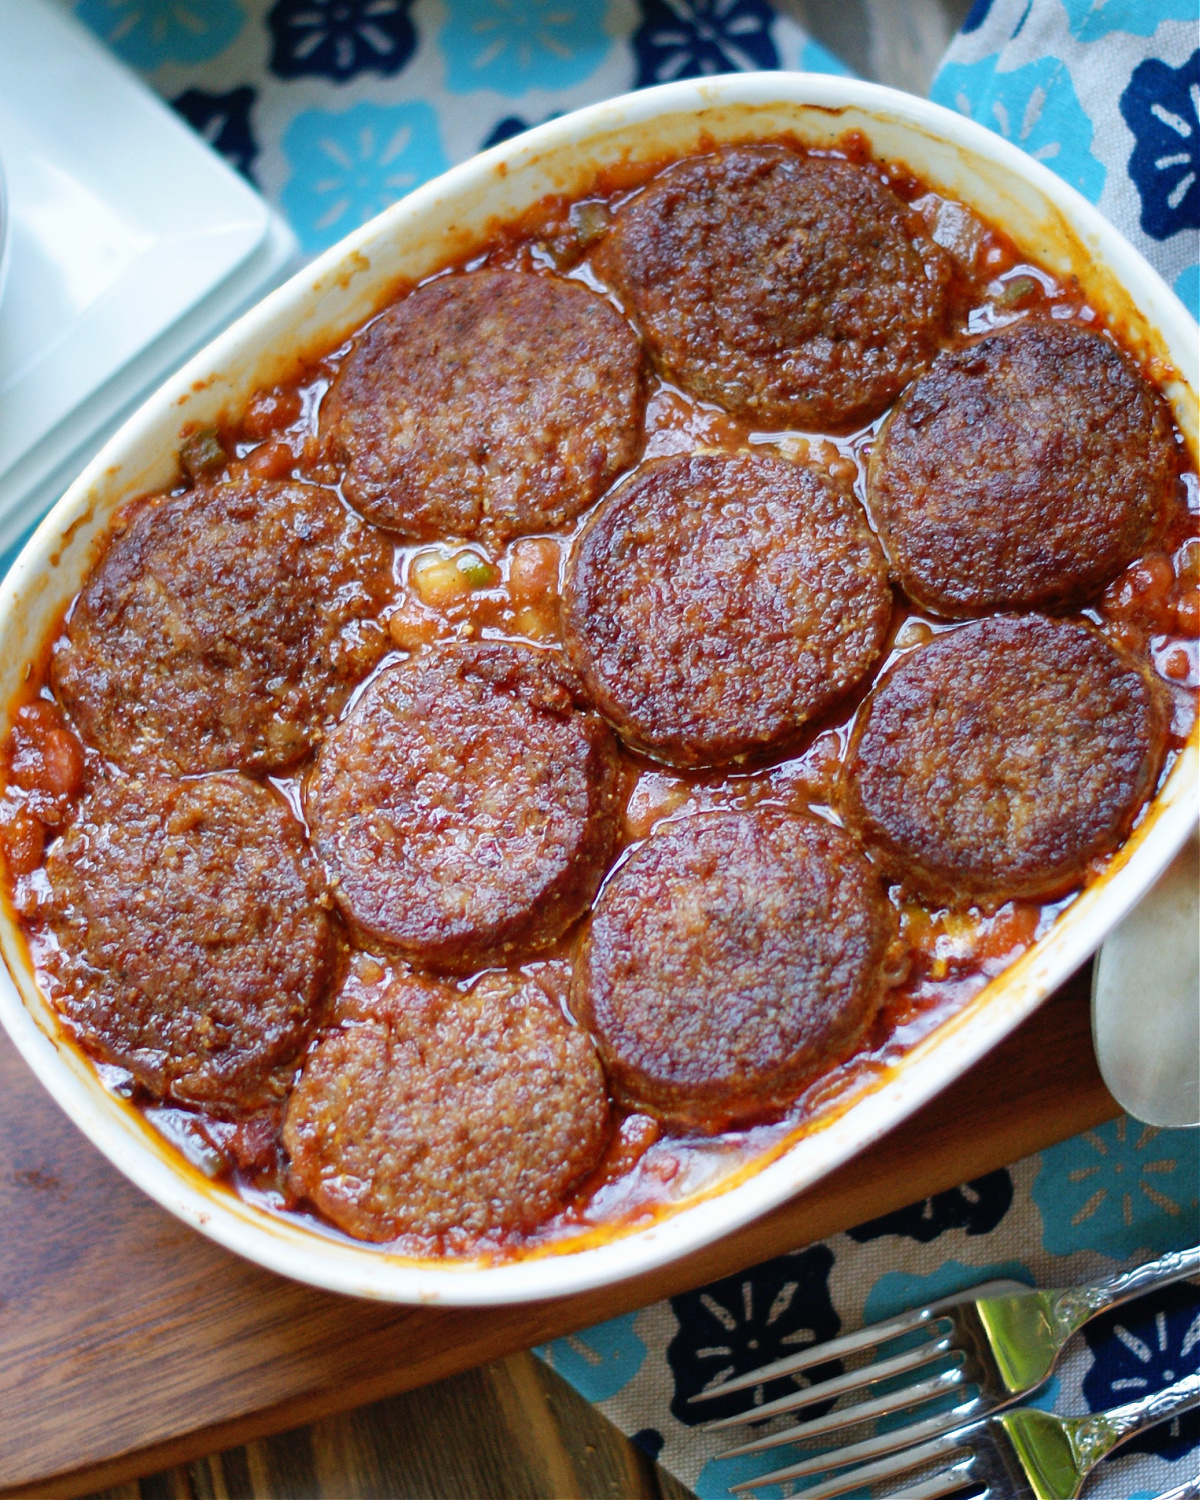 Homemade Baked Beans with ground sausage patties on top